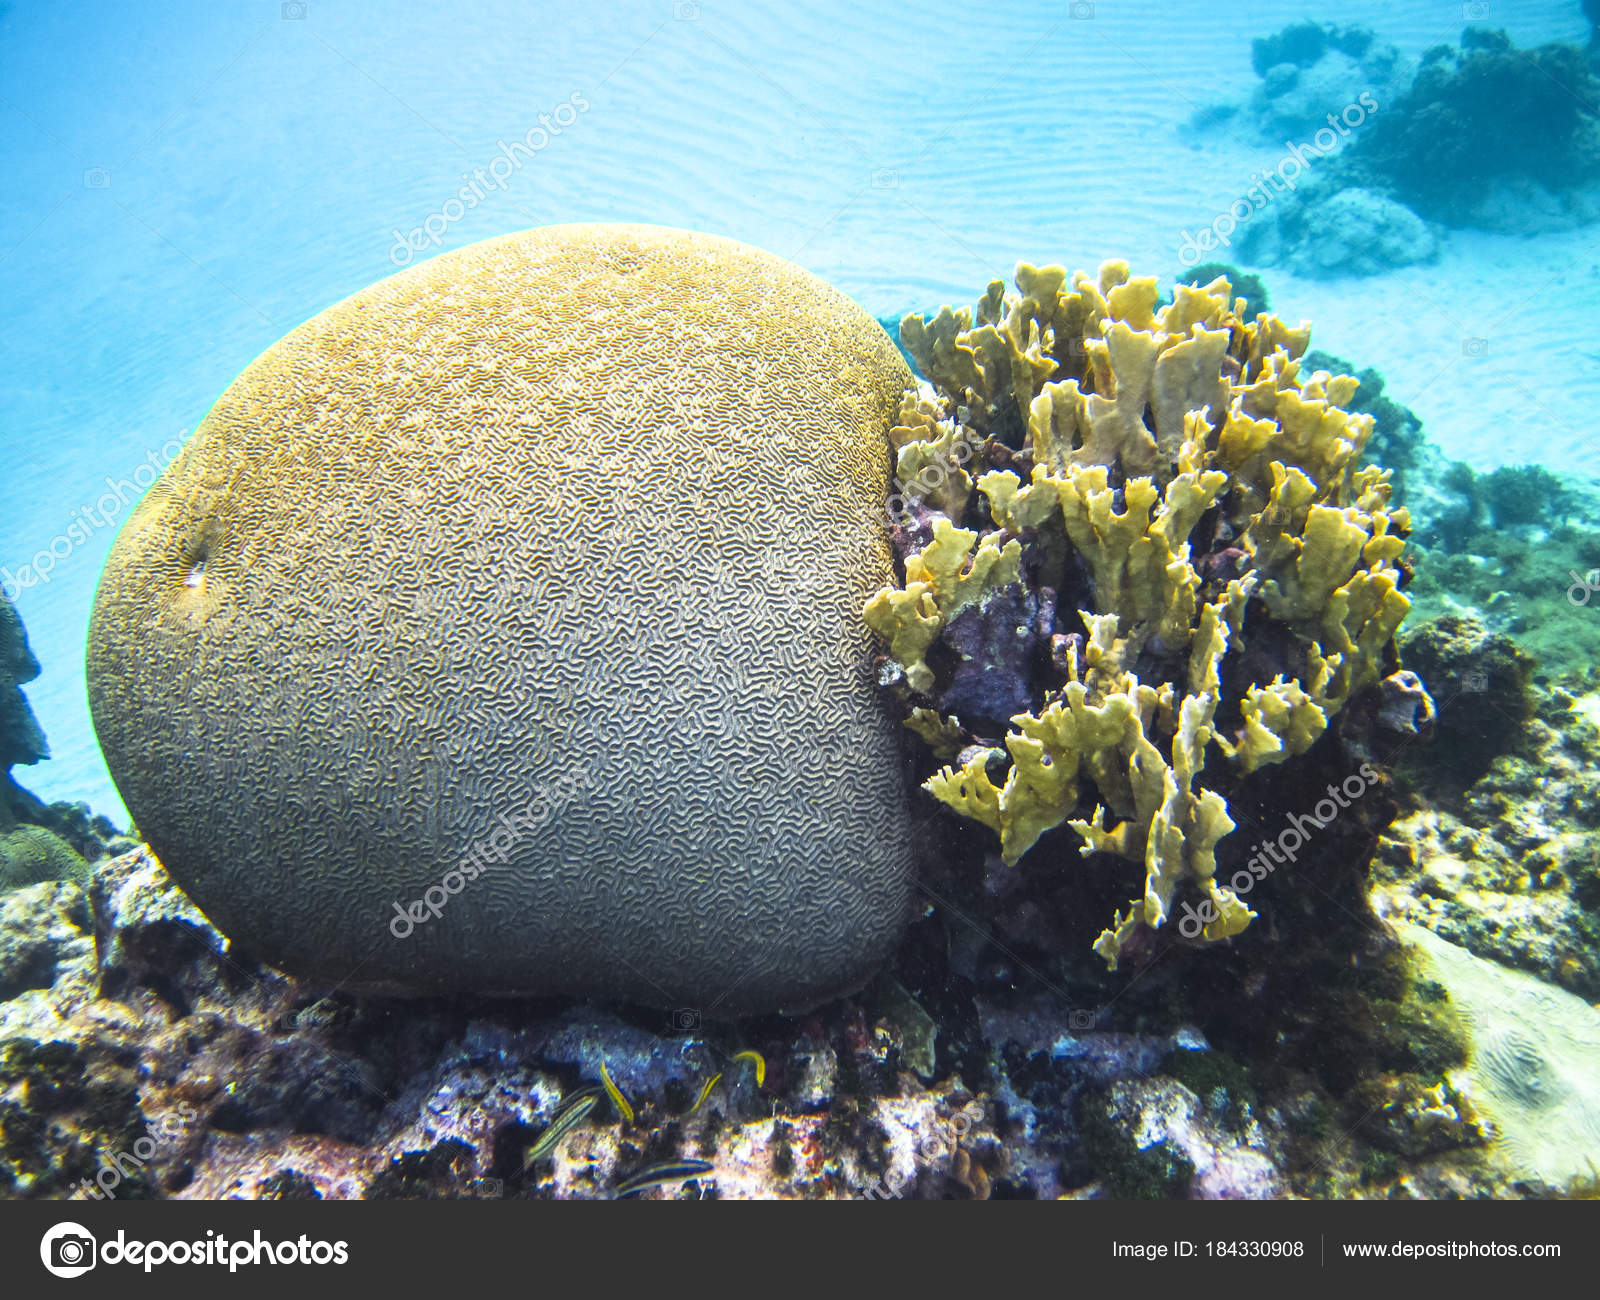 Different types of coral including brain coral family mussidae or different types of coral including brain coral family mussidae or merulinidae in the publicscrutiny Gallery